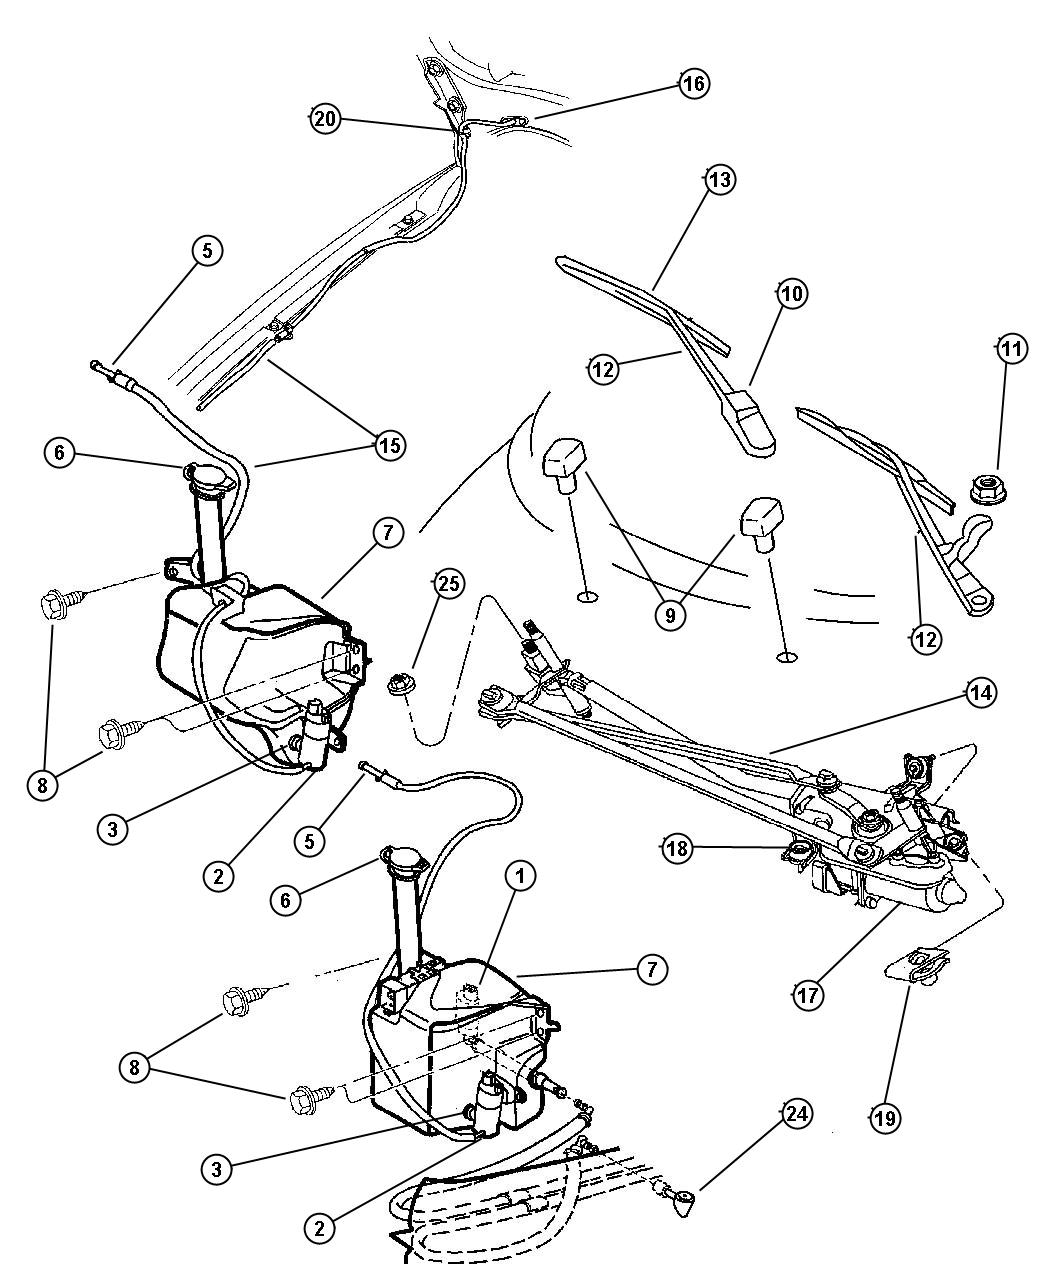 1052313 Steering Column Wiring Colors additionally Chevrolet Silverado Windshield Wiper Diagnostic 390898 together with 586722 Firing Order On A 360 A additionally Instrument Panel Wiring Diagram G Models For 1979 Gmc Light Duty Truck Part 2 additionally Engine. on 1966 dodge truck wiring diagram